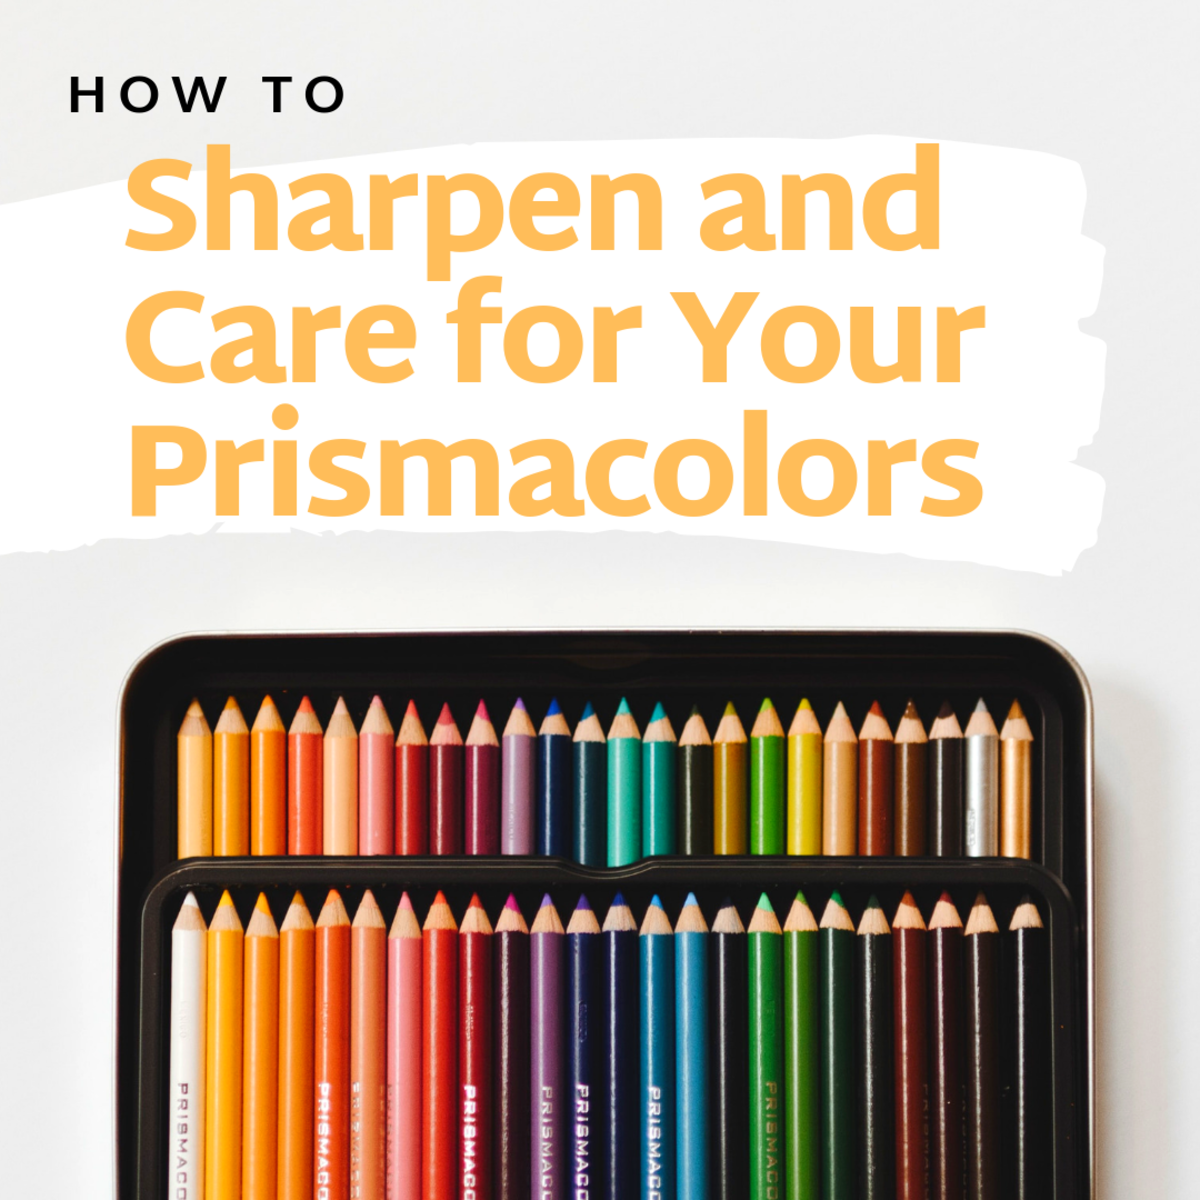 Learn how to sharpen (and take good care of) your Prismacolor colored pencils.